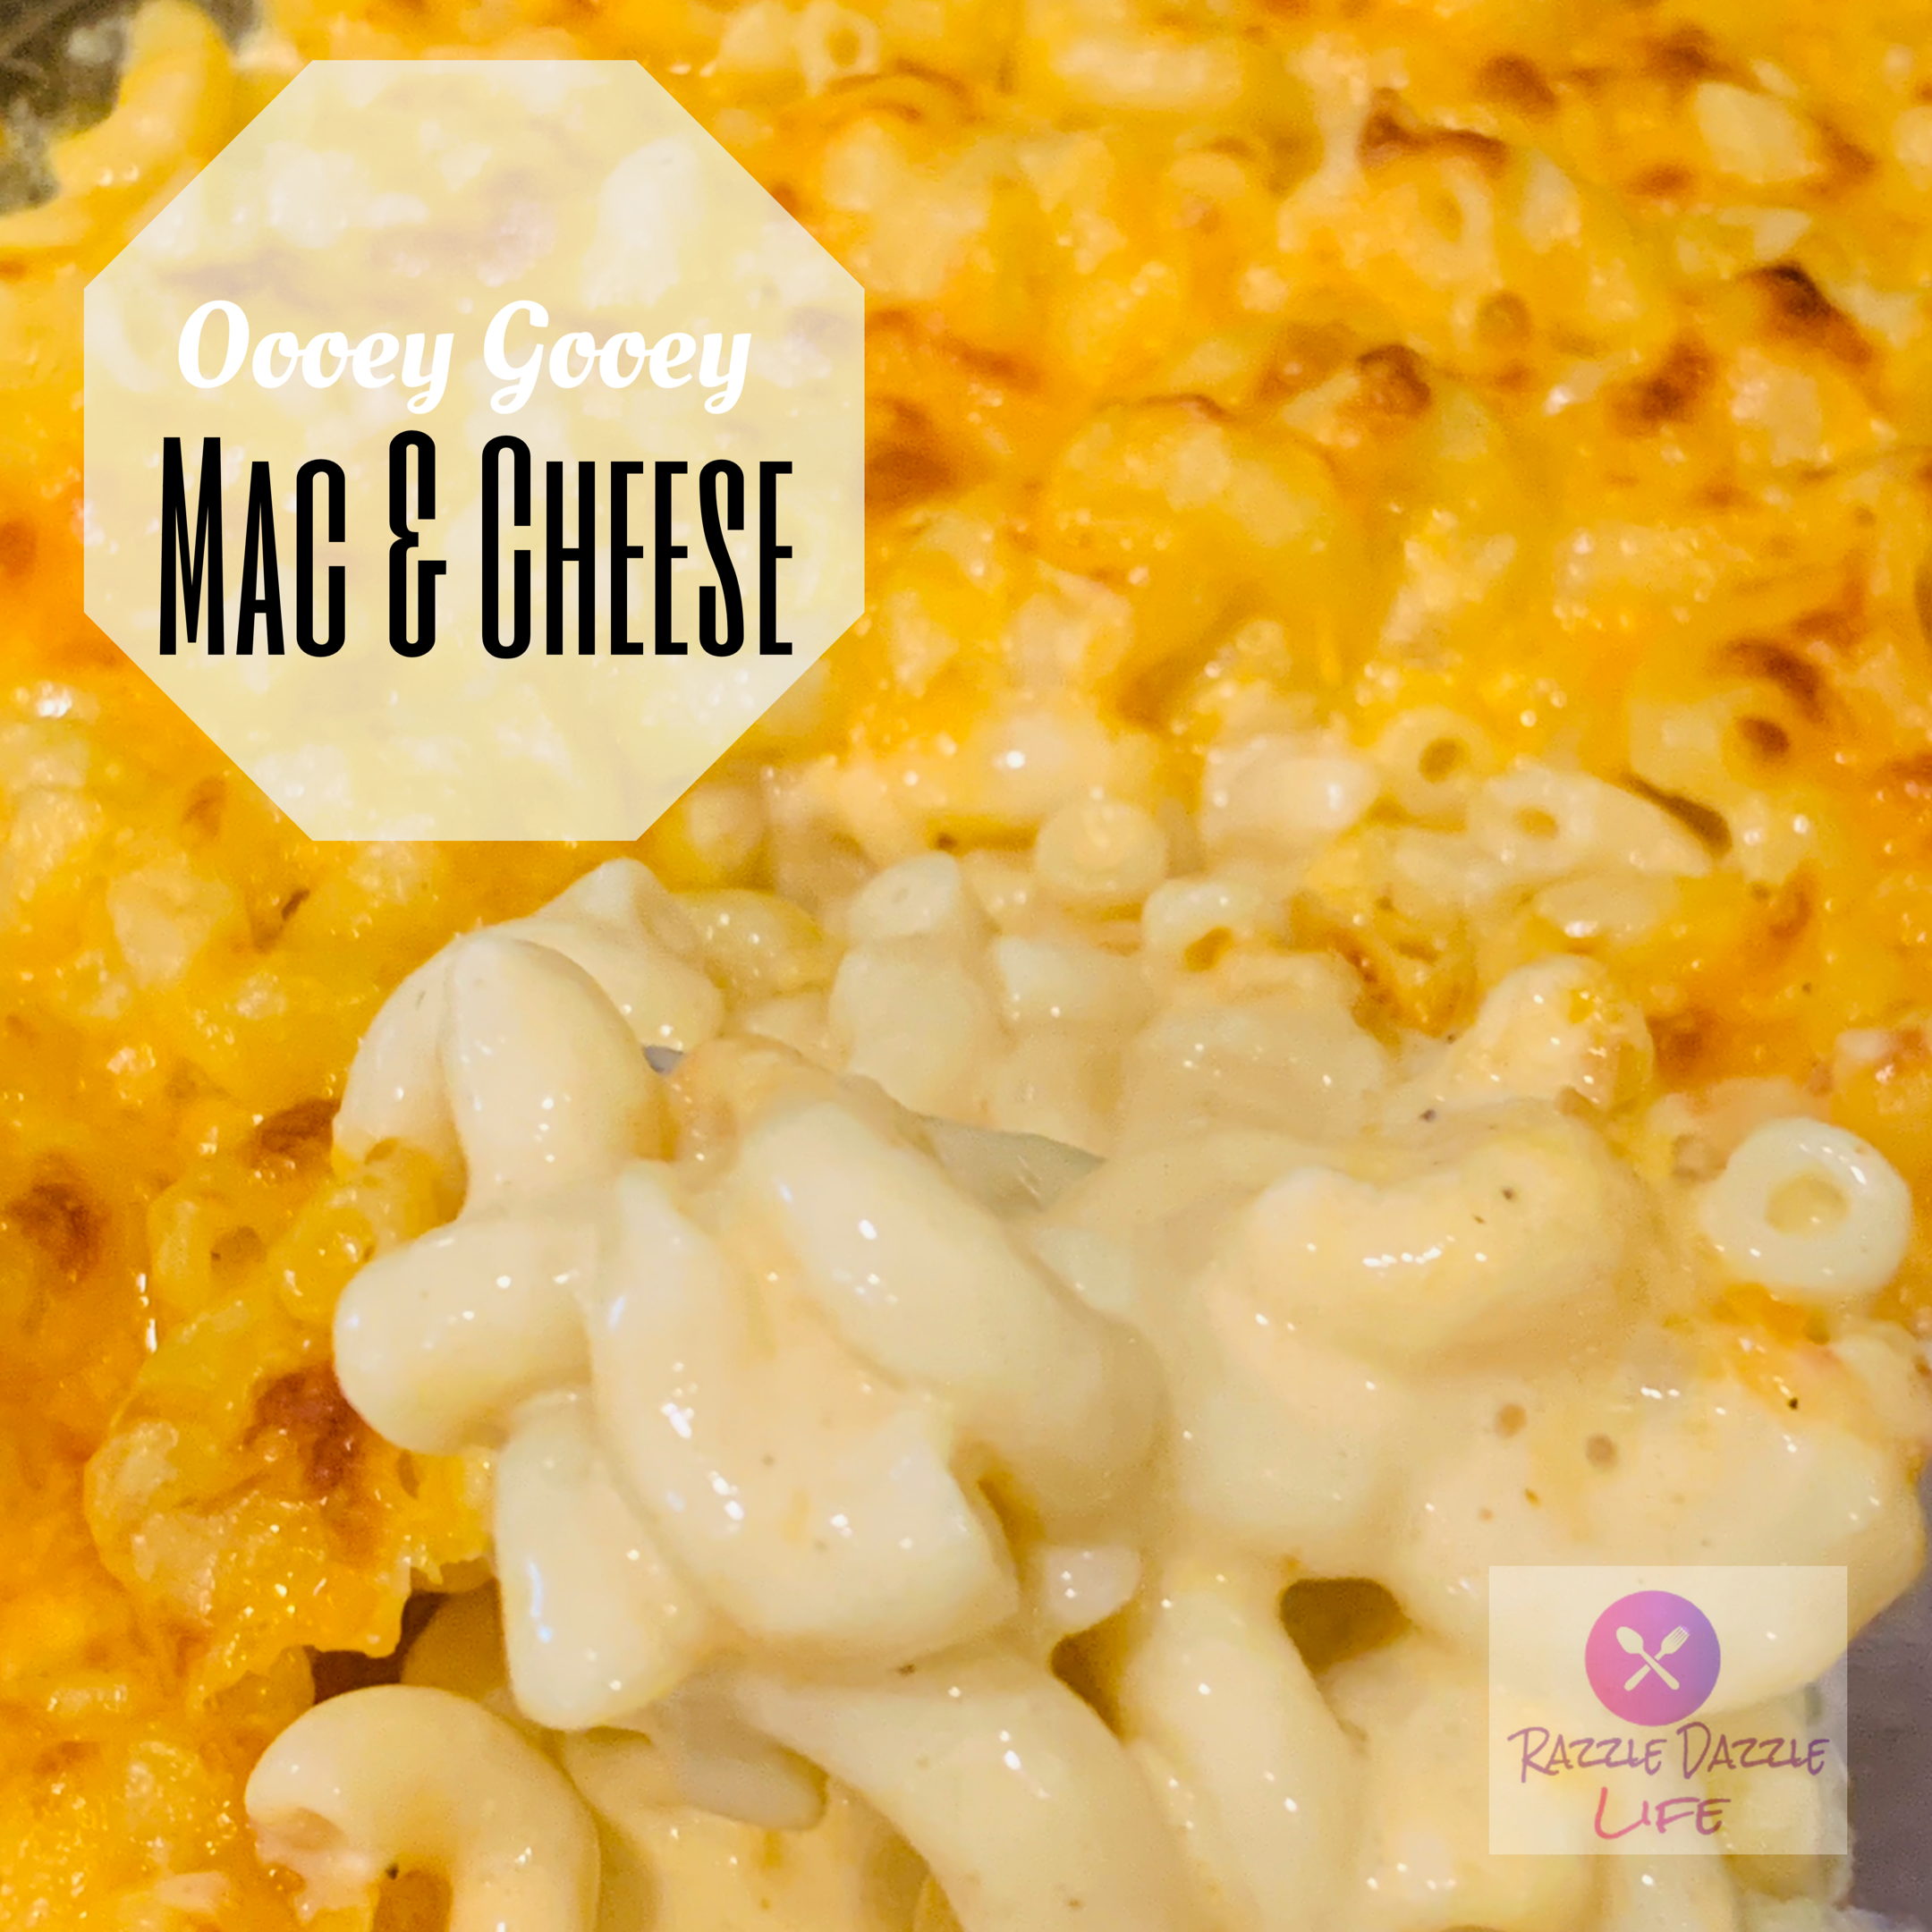 Perfectly cheesy, creamy southern macaroni and cheese, just